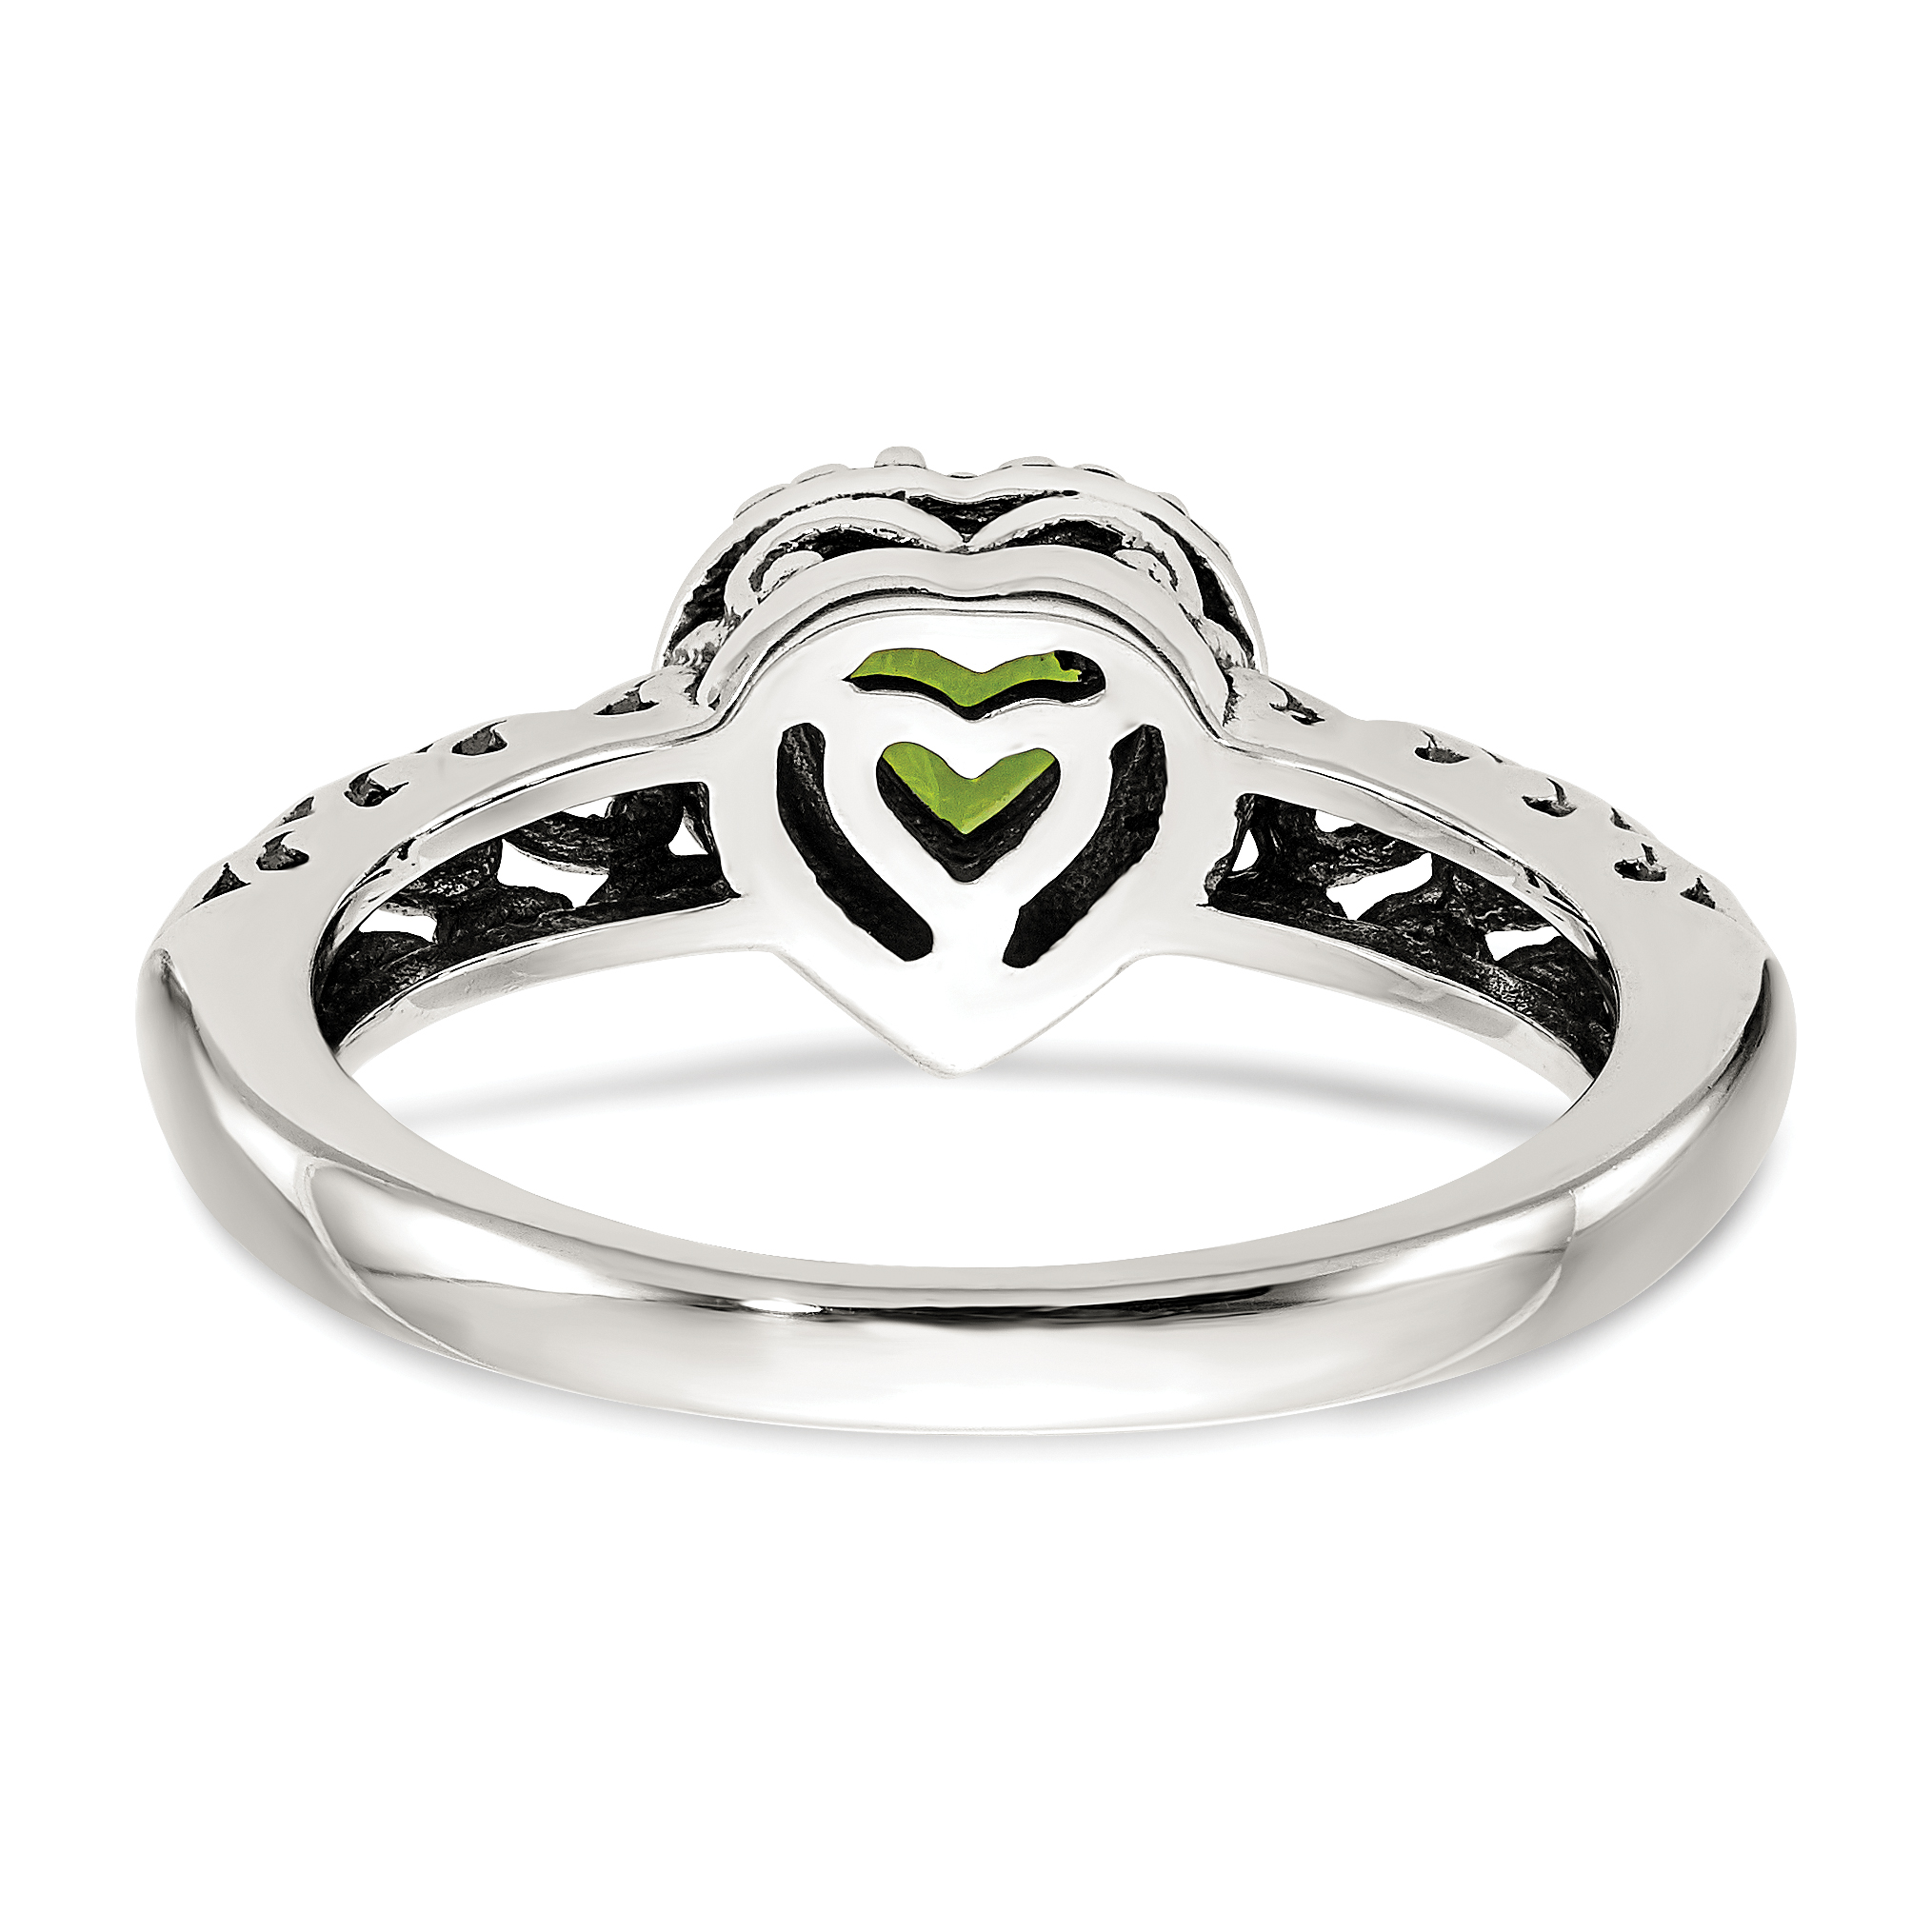 925 Sterling Silver 14k Green Peridot Band Ring Size 6.00 S/love Gemstone Fine Jewelry Gifts For Women For Her - image 3 de 6